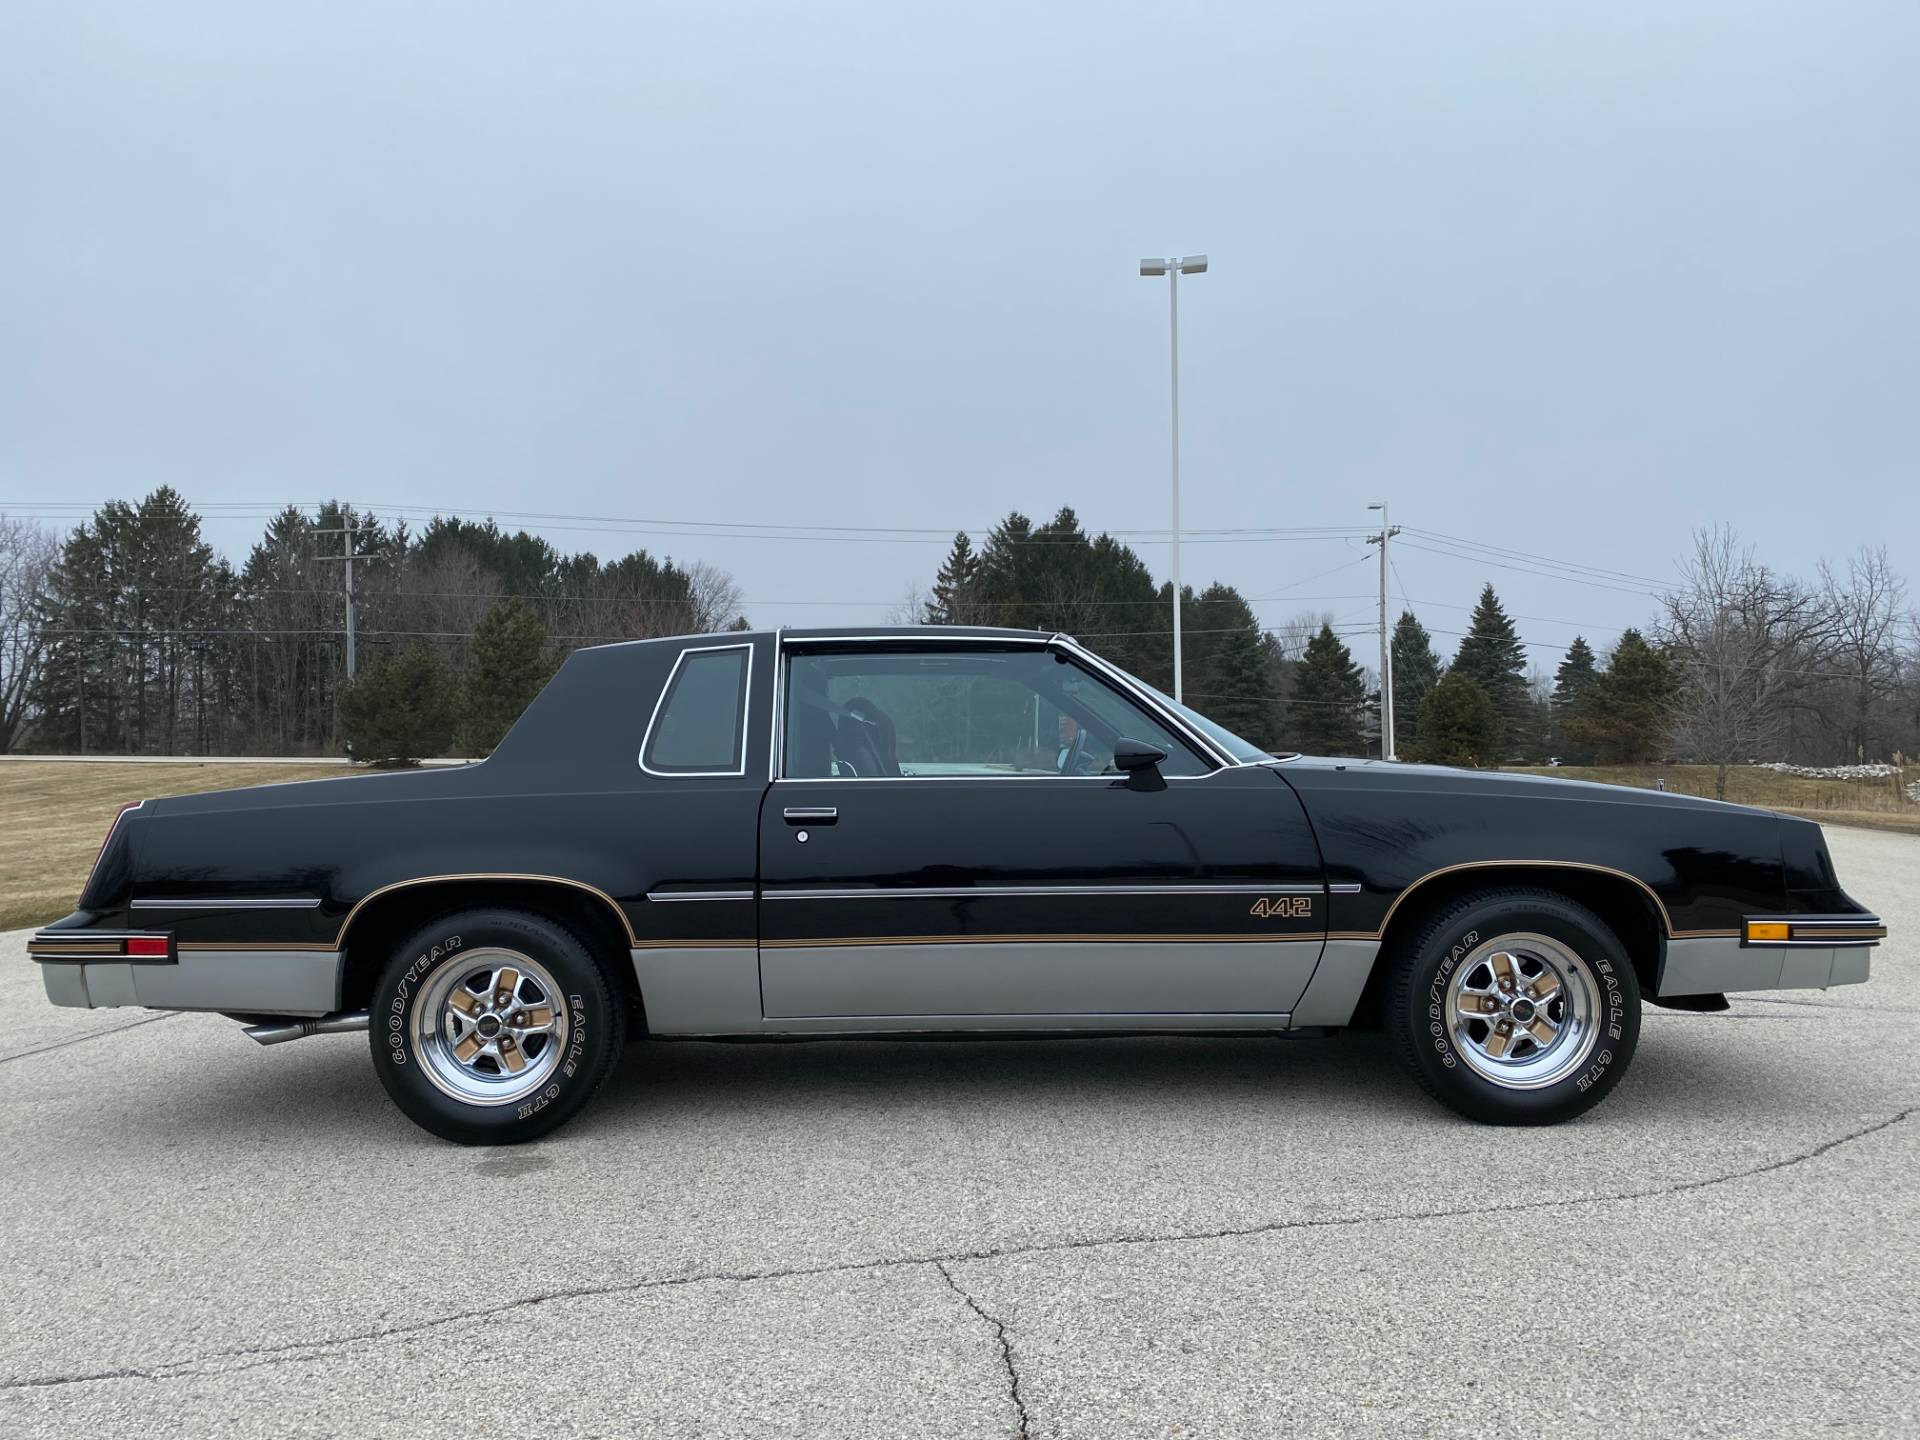 1985 Oldsmobile Cutlass Salon 442 in Big Bend, Wisconsin - Photo 141